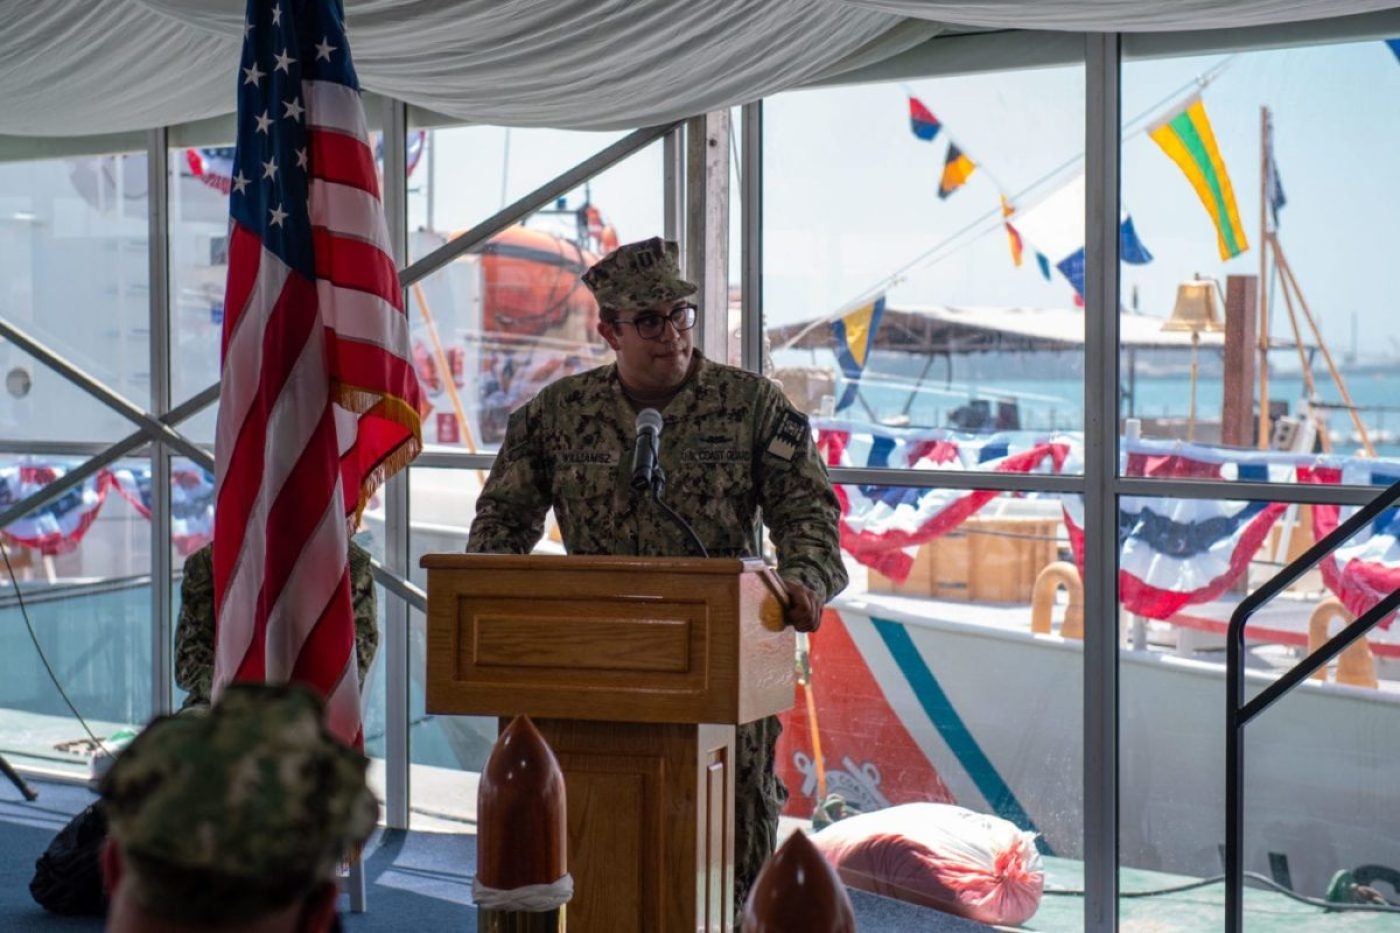 Lt. Benjamin Williamsz, commanding officer of USCGC Adak (WPB 1333), delivers remarks during the decommissioning ceremony for Adak and USCGC Aquidneck (WPB 1309) onboard Naval Support Activity Bahrain, June 15. Adak and Aquidneck operated in the U.S. 5th Fleet area of operations since 2003 in support of Operation Iraqi Freedom, Enduring Freedom, Inherent Resolve and Spartan Shield. (U.S. Navy photo by Mass Communication Specialist 3rd Class Dawson Roth)